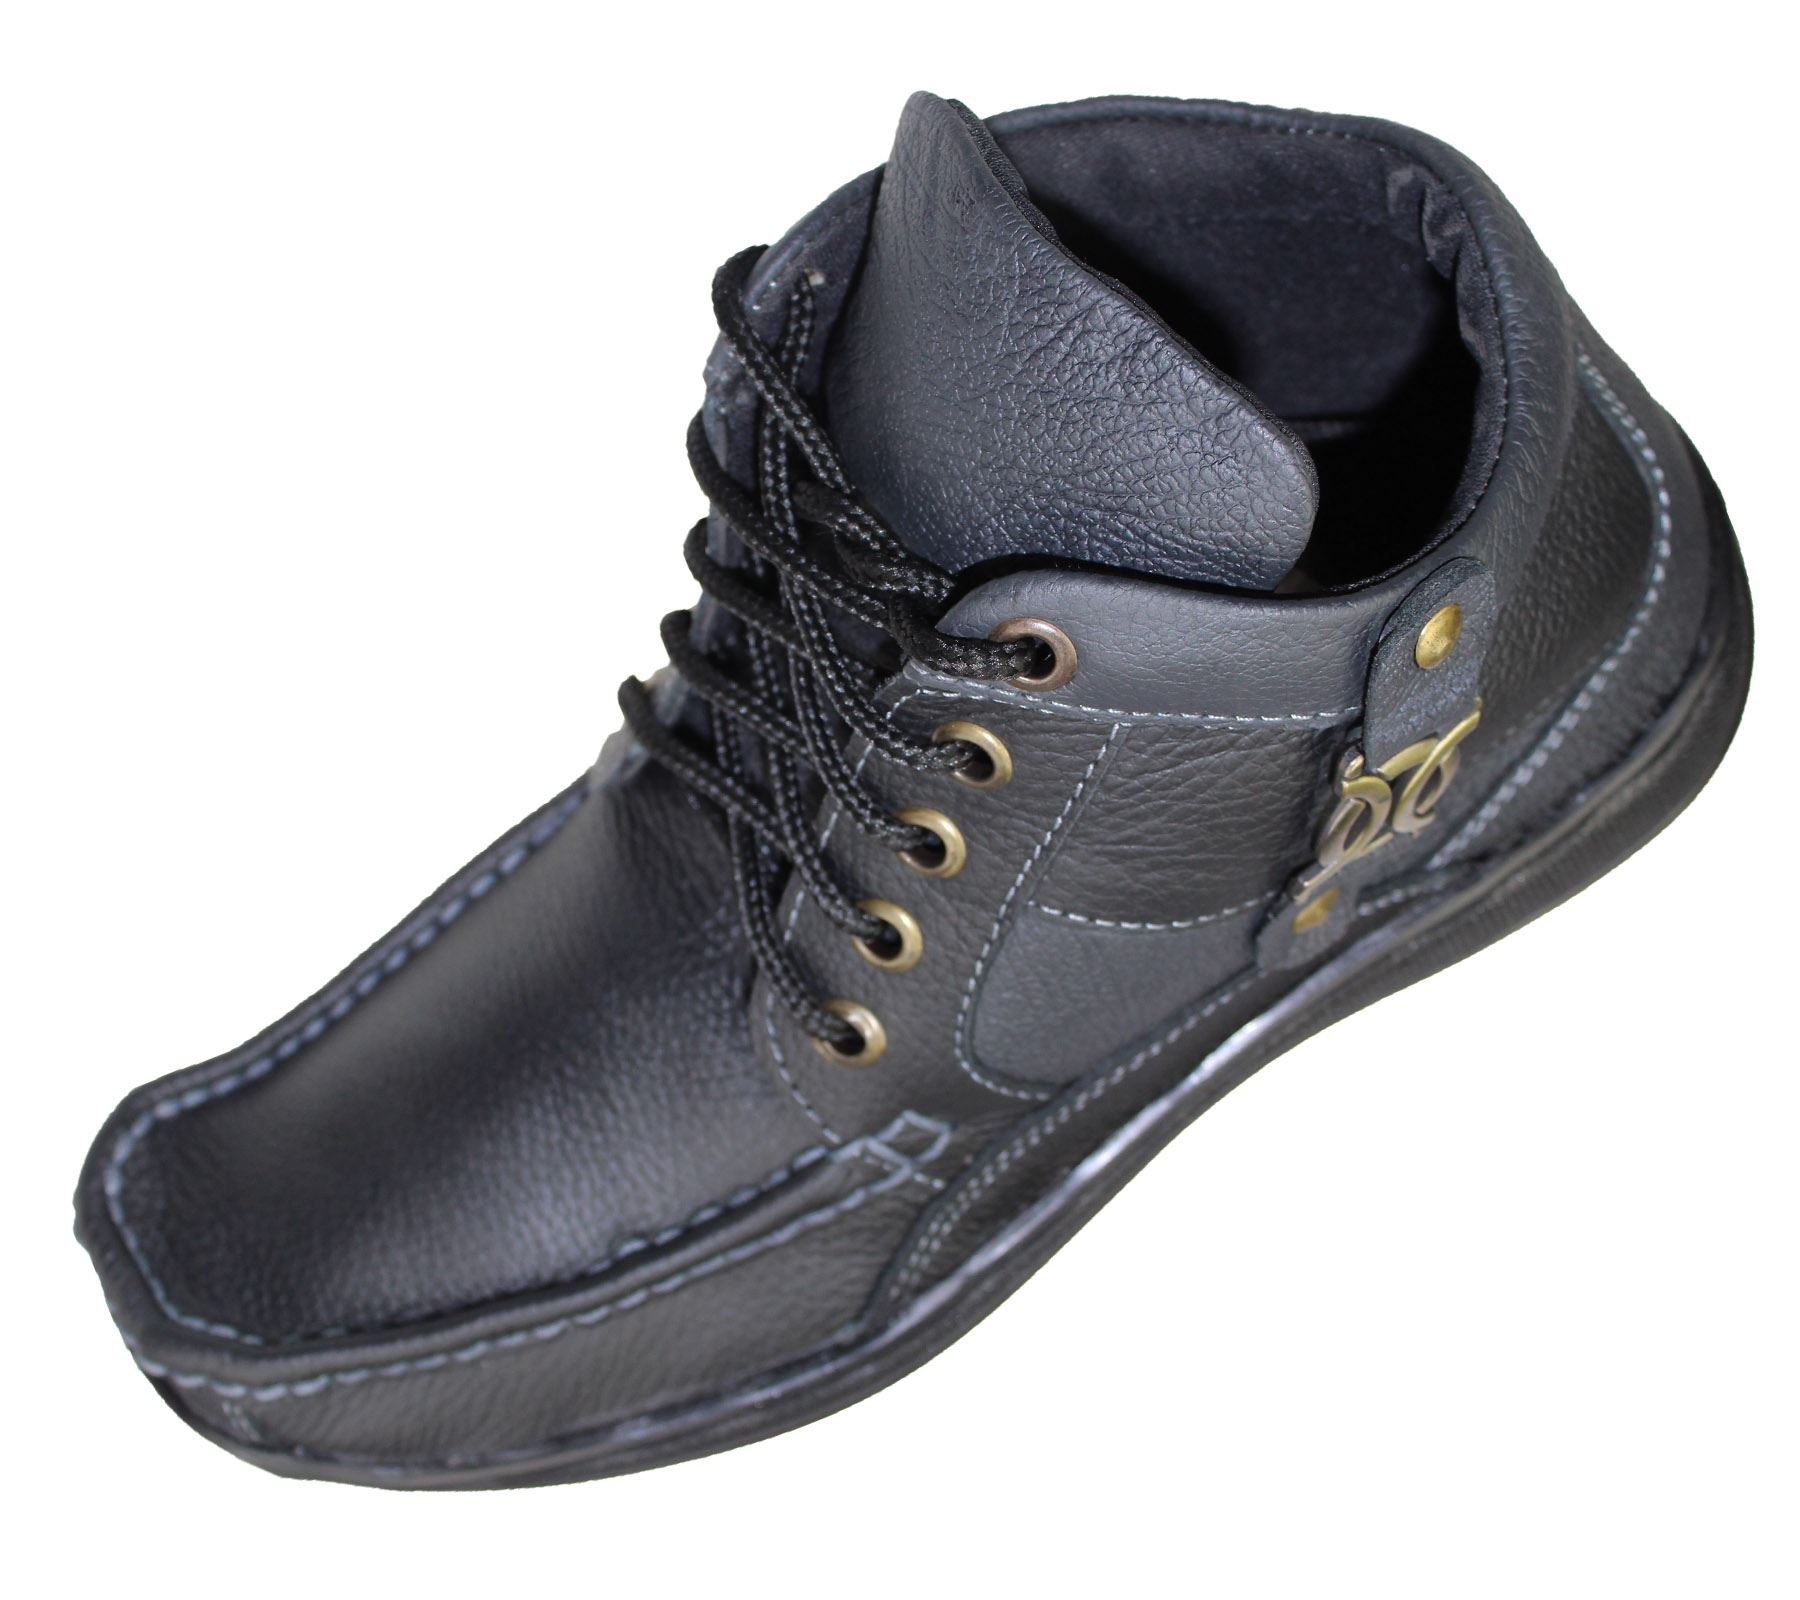 MENS LEATHER WORK BOOTS HIG TOP ANKLE HIKING TRAIL BIKER ...